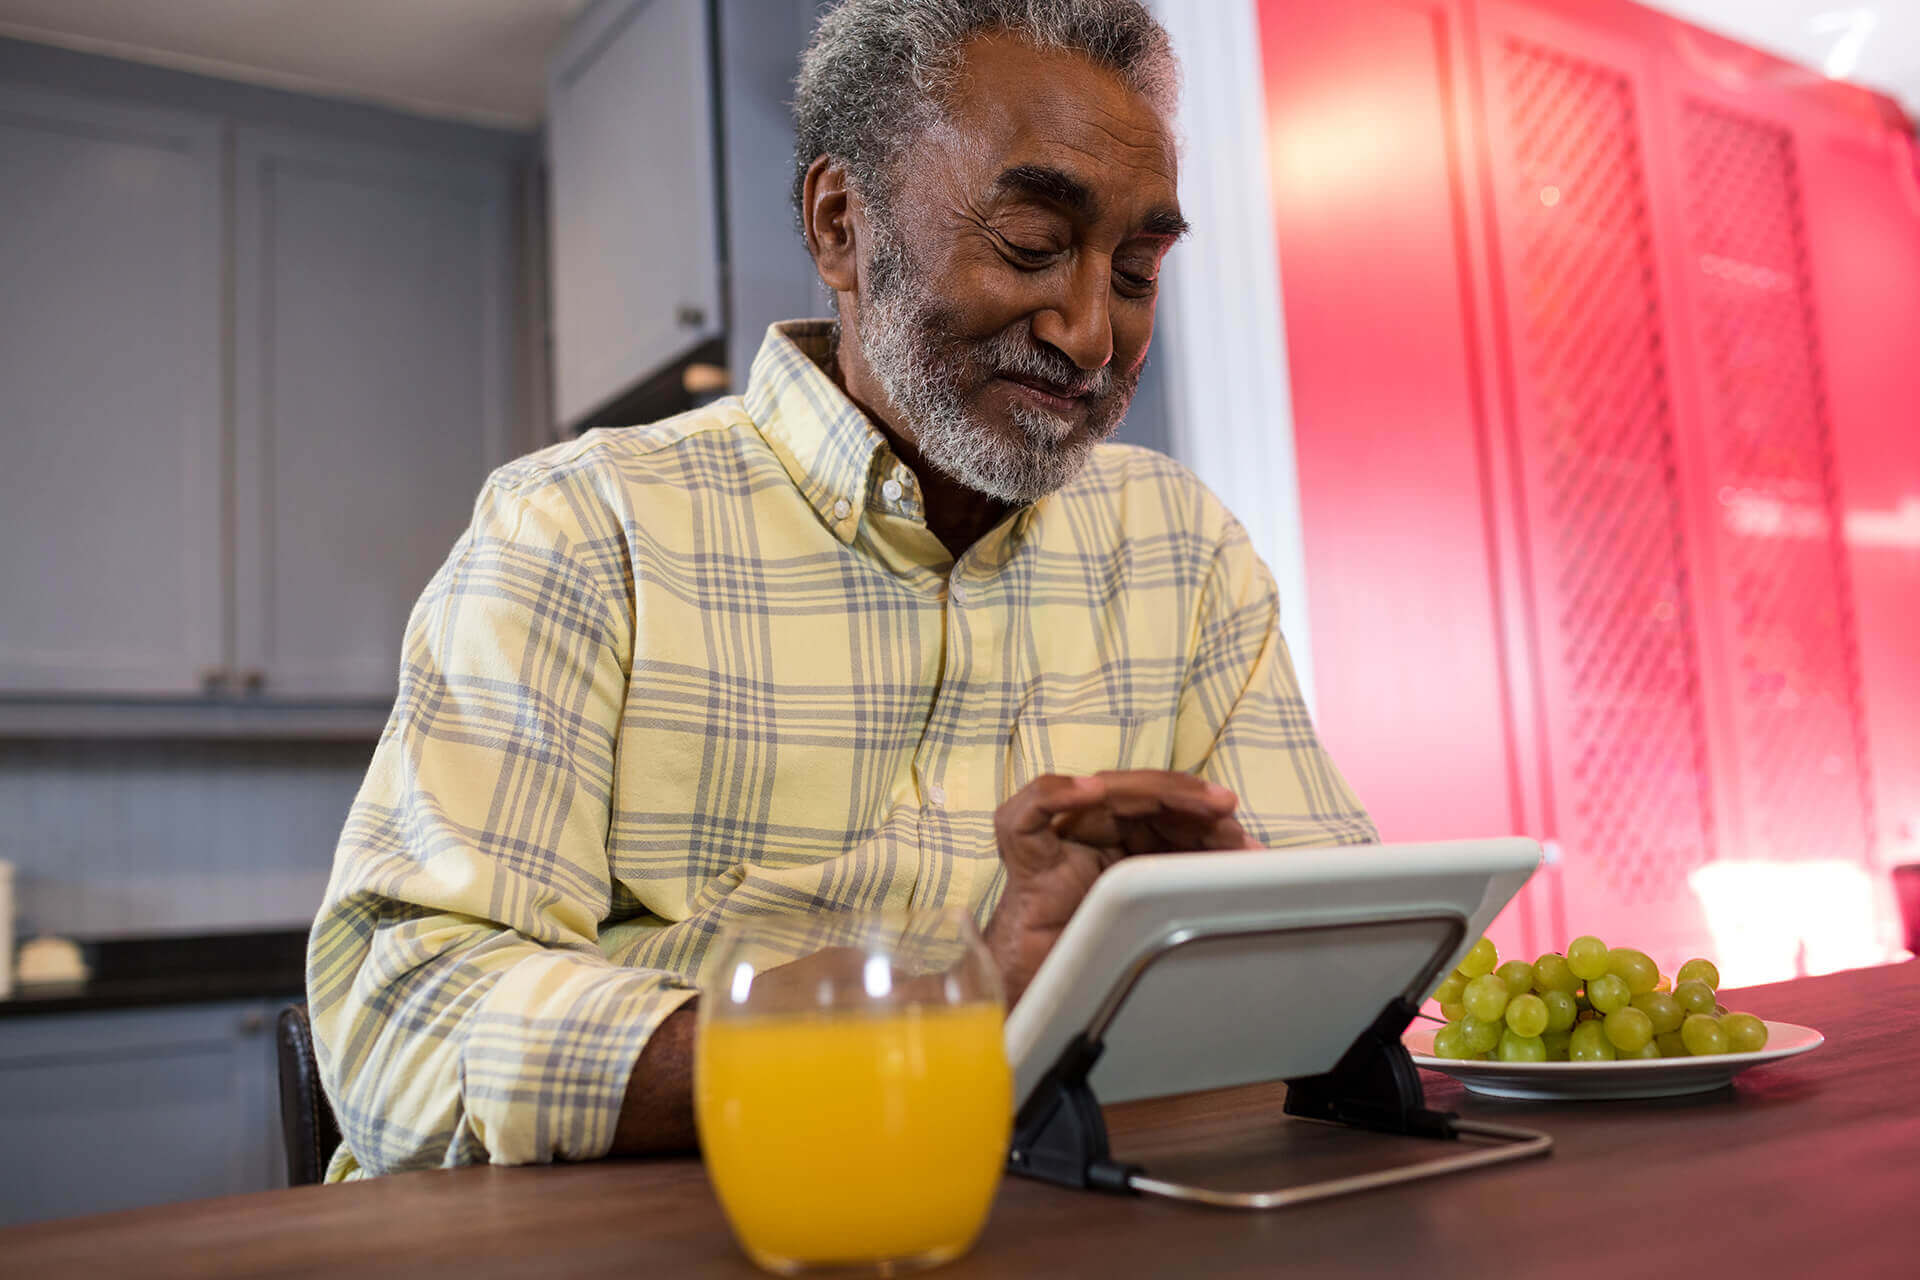 happy senior man using tablet computer in kitchen SUXG8R9 1